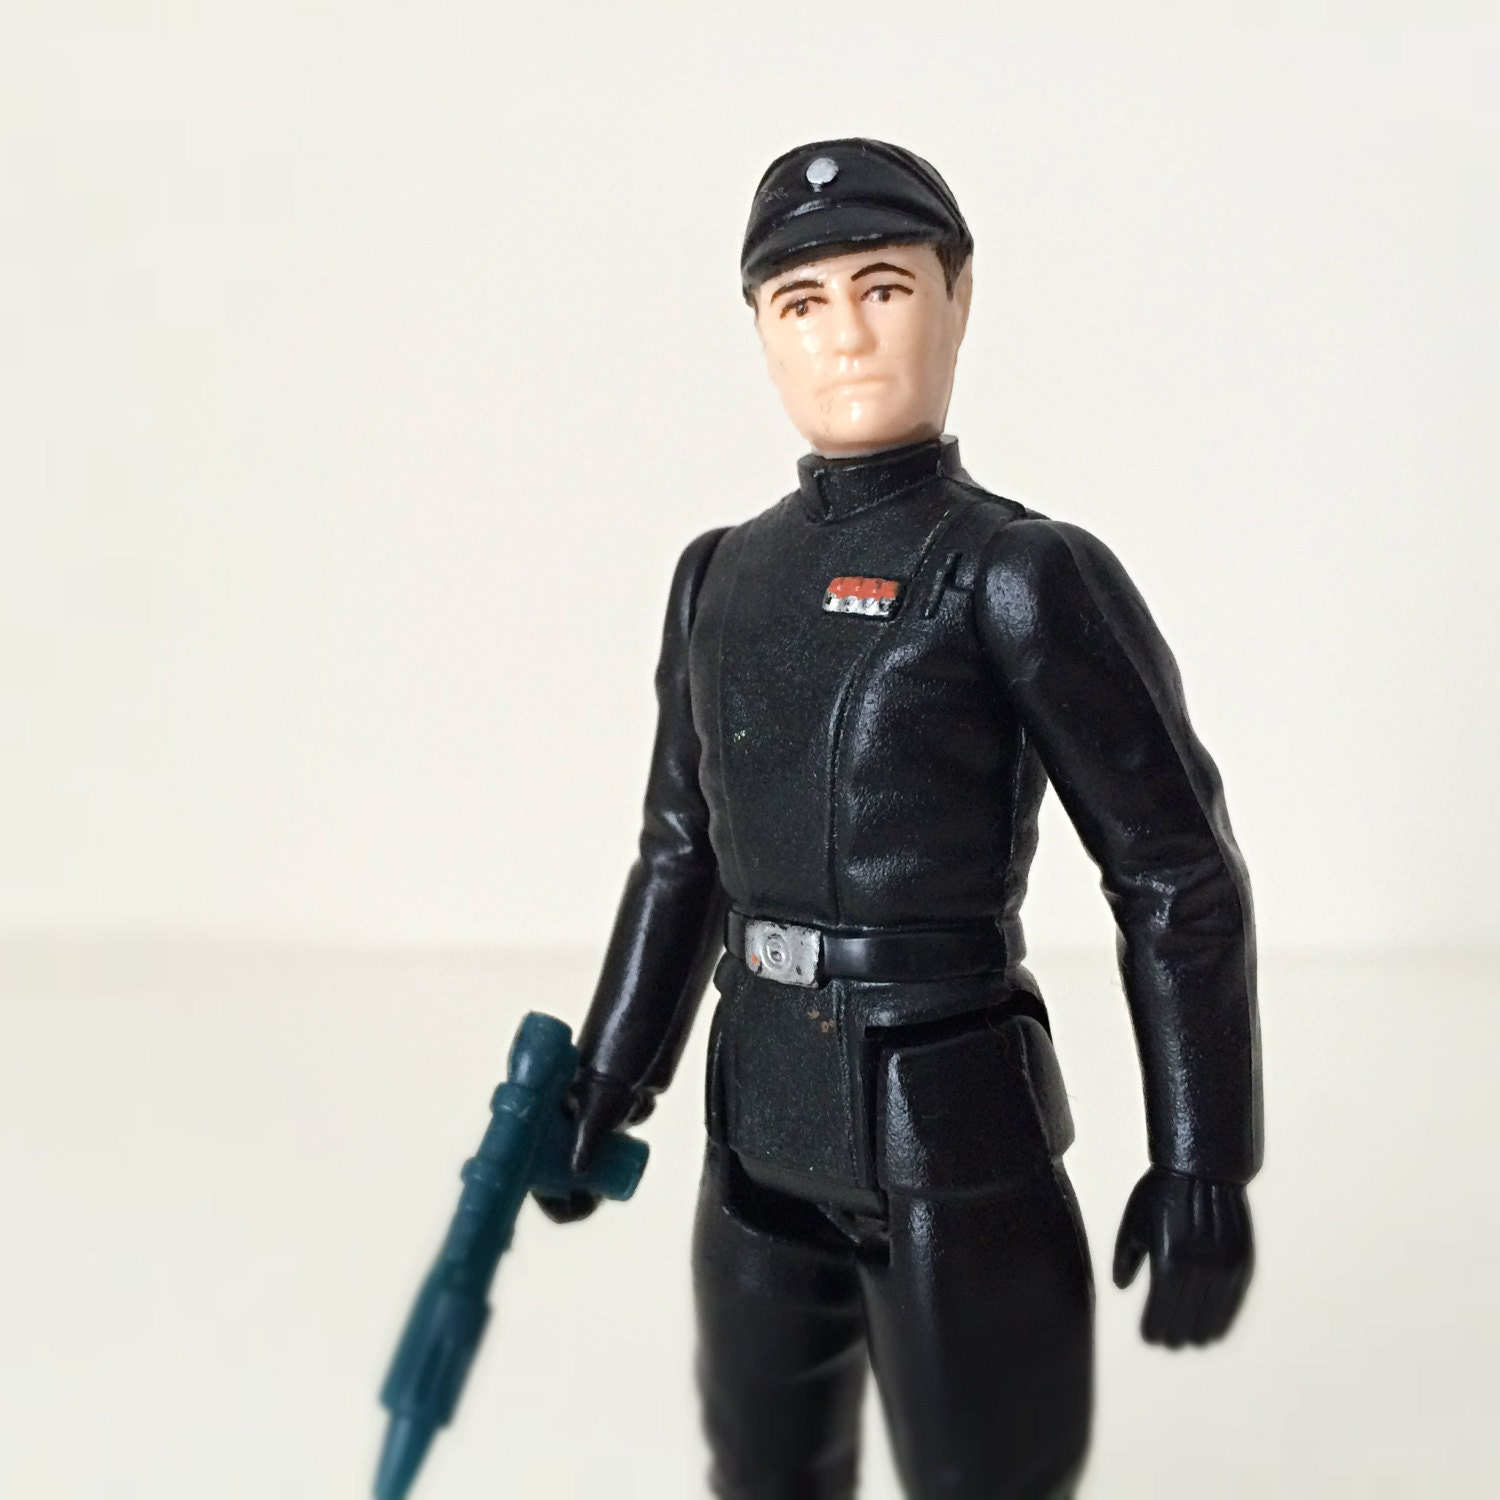 Star Wars Toys 1980s : Star wars action figure kenner imperial by